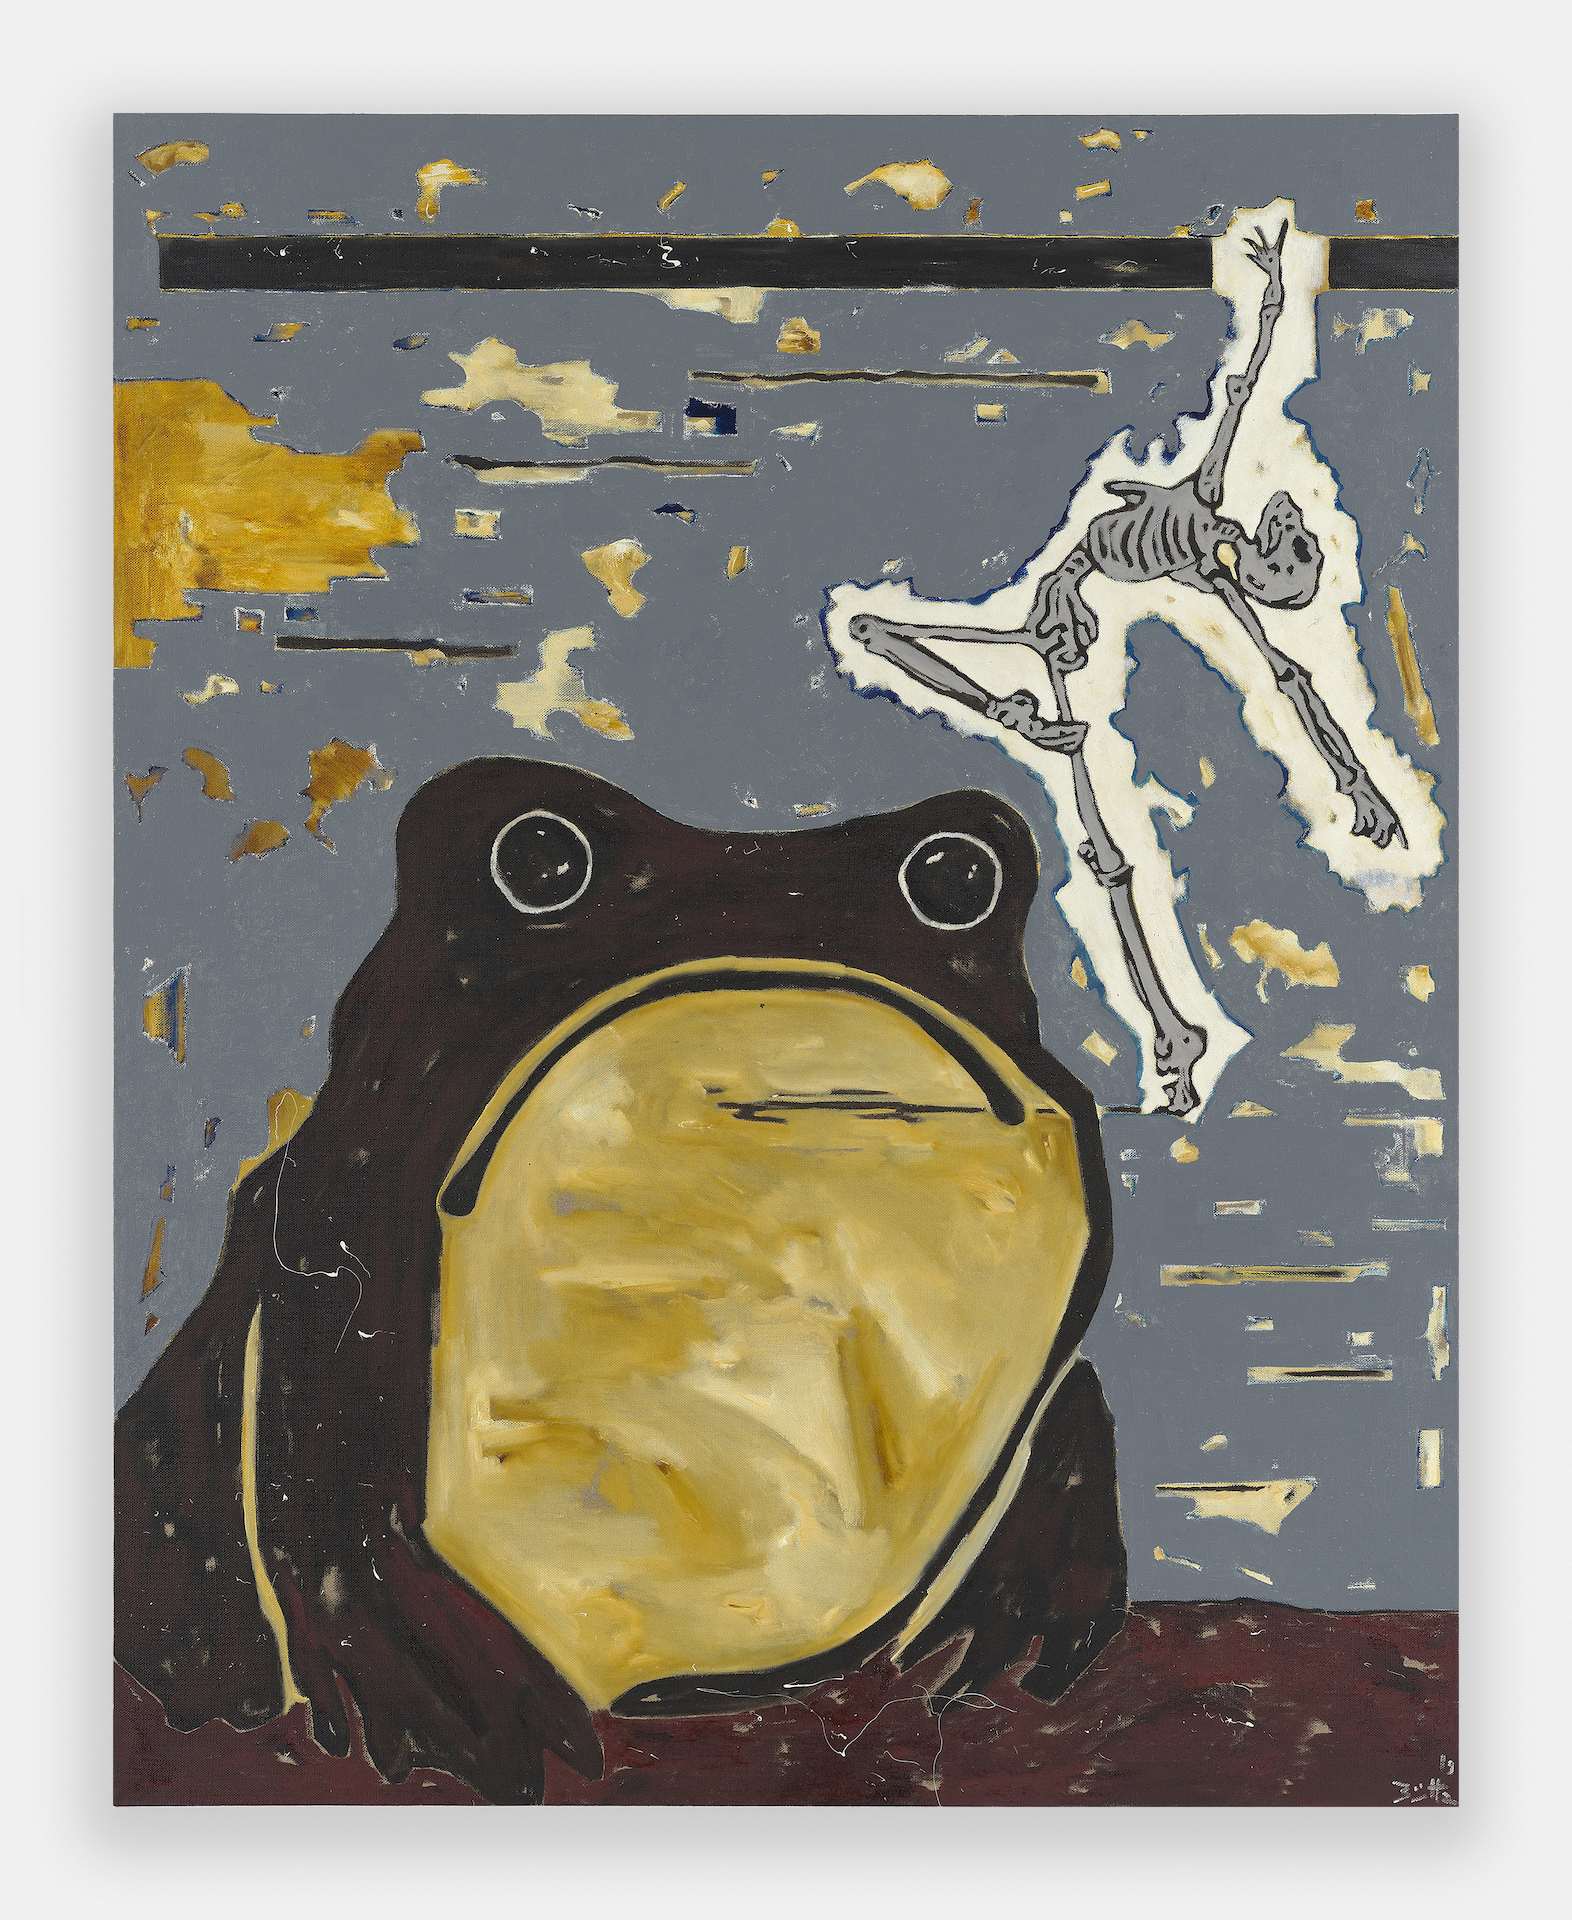 Death and the Toad (Der Tod und die Kröte), 2019, Werner Büttner: No Scene from My Studio, Simon Lee, London, 13 May– 10 June, 2021. All images courtesy of the artist and Simon Lee Gallery.